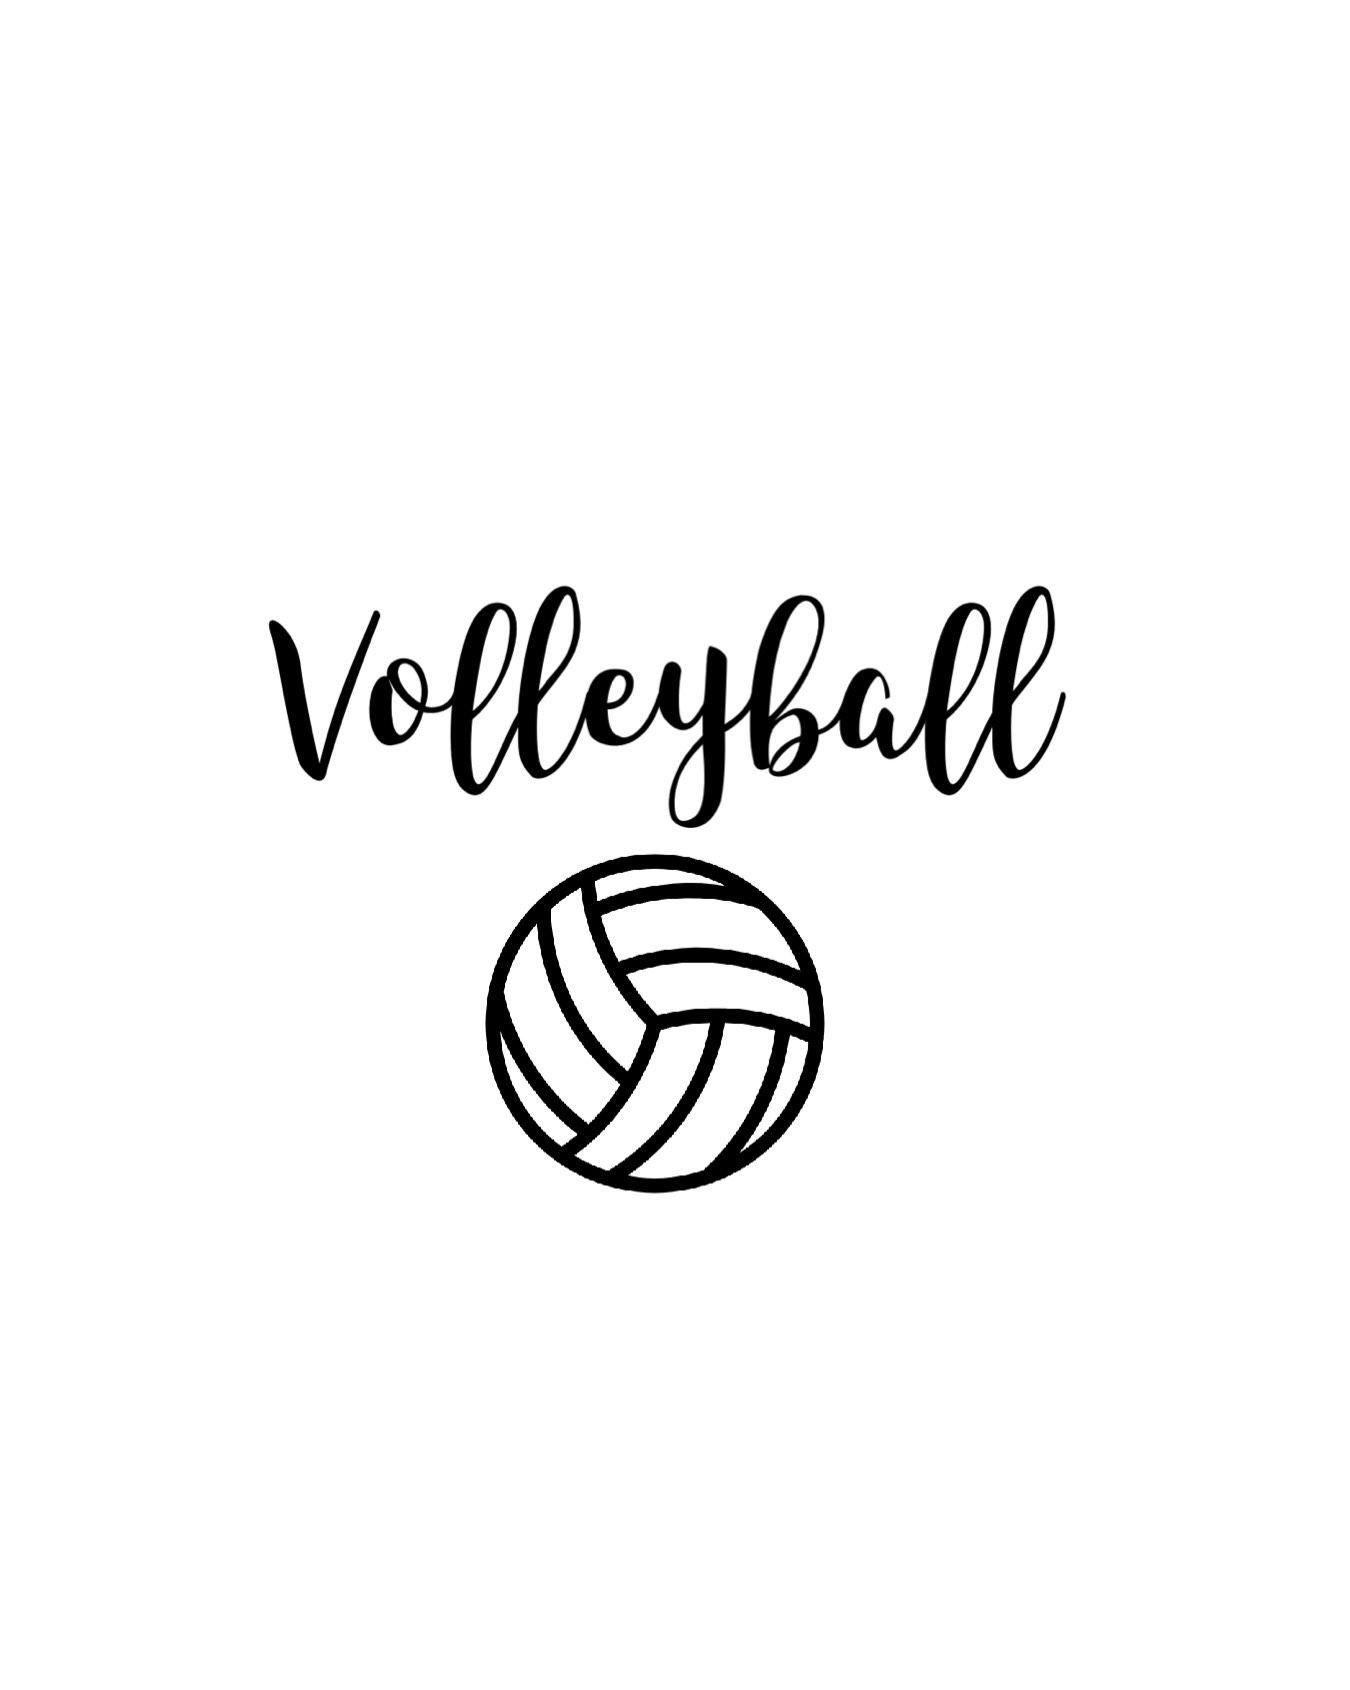 73 Wallpaper Motivation Wallpaper Volleyball Quotes In 2020 Volleyball Wallpaper Volleyball Players Volleyball Drawing